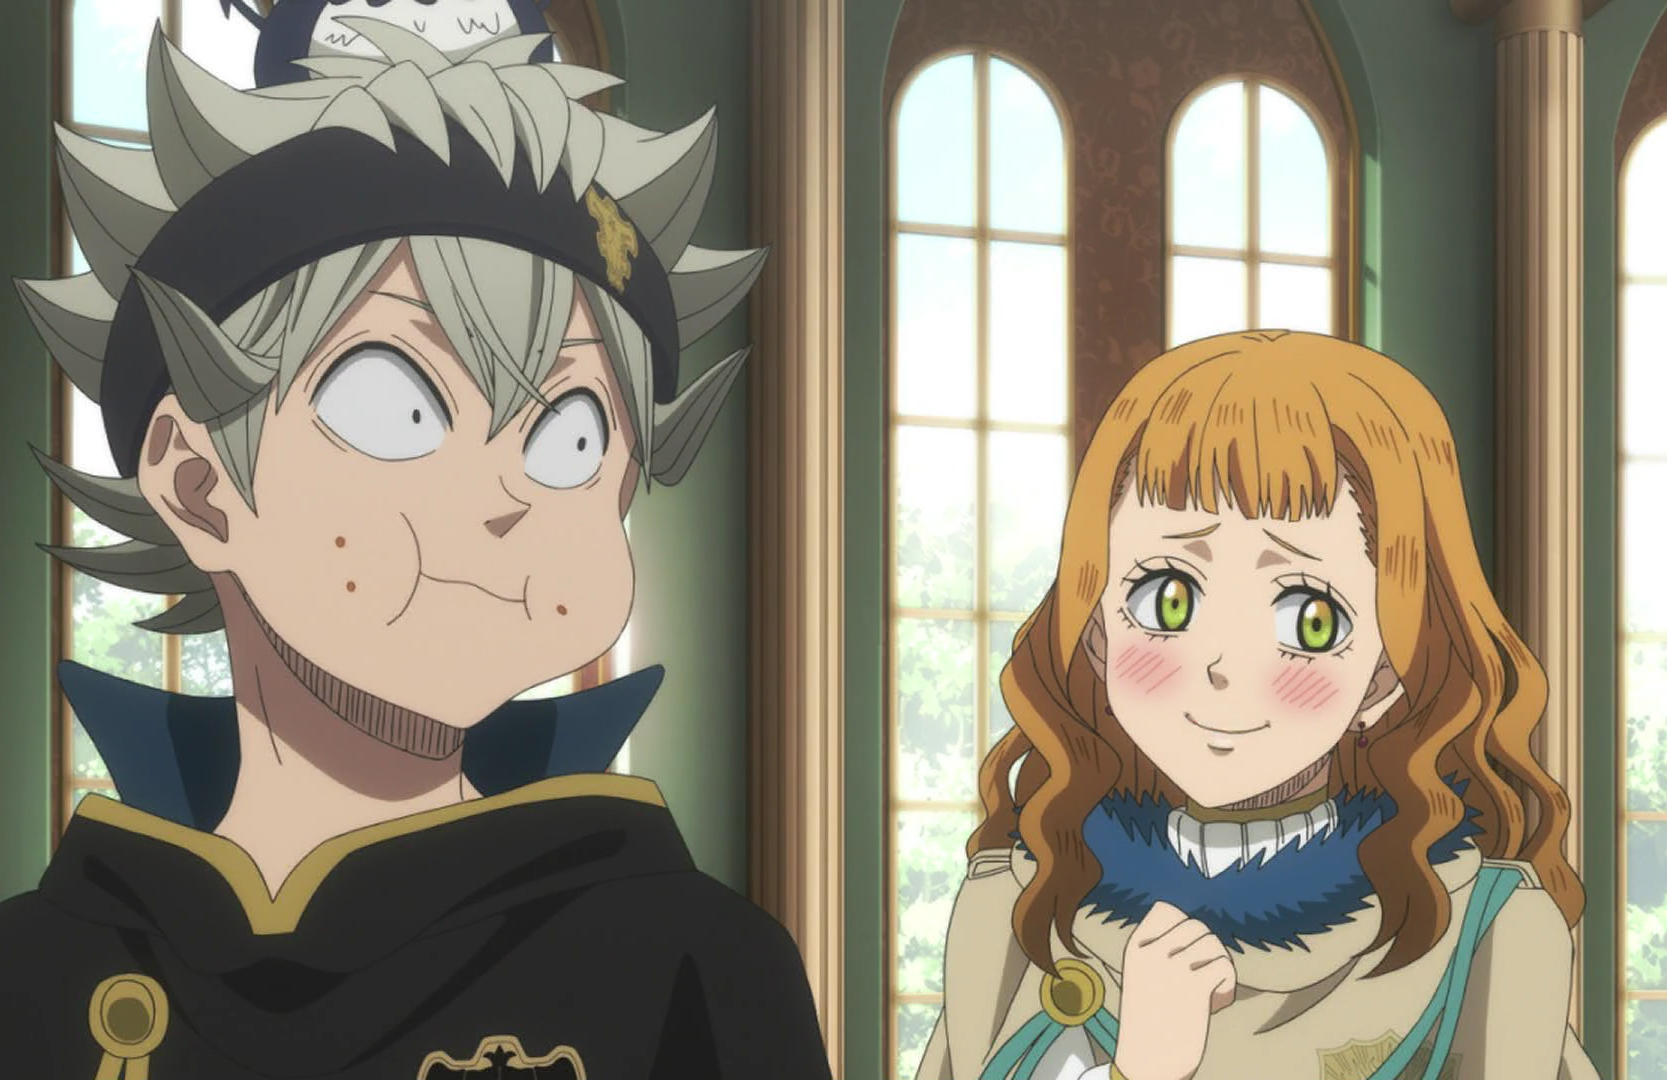 File:Mimosa interacting with Asta during the banquet.png